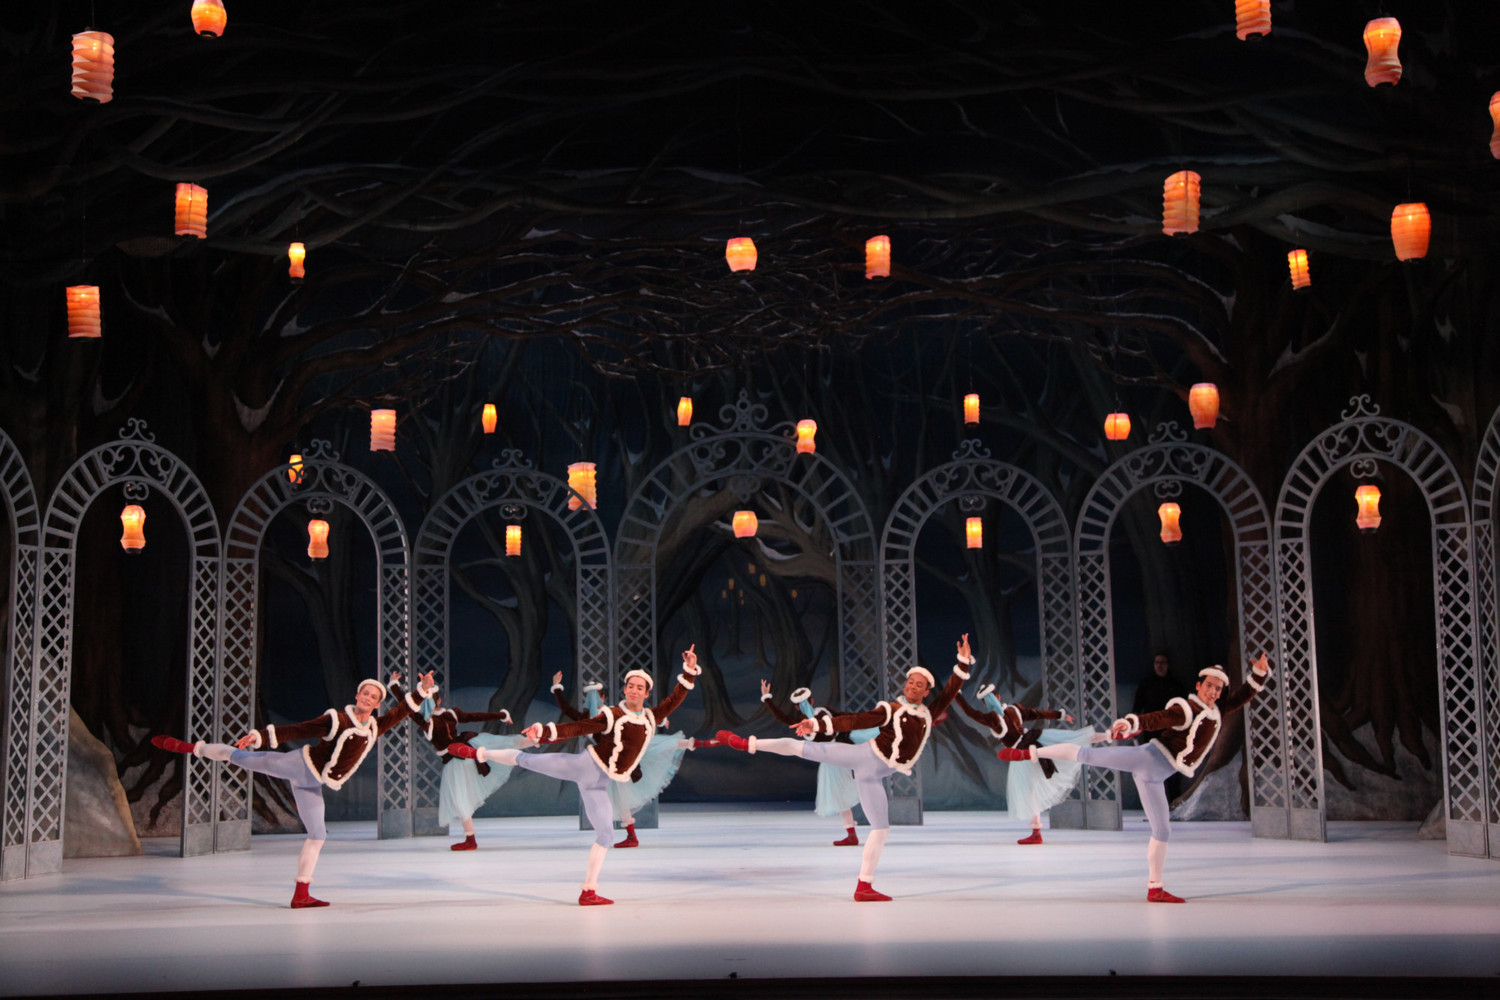 BWW Review: VICTORIAN WINTERS at Sarasota Ballet